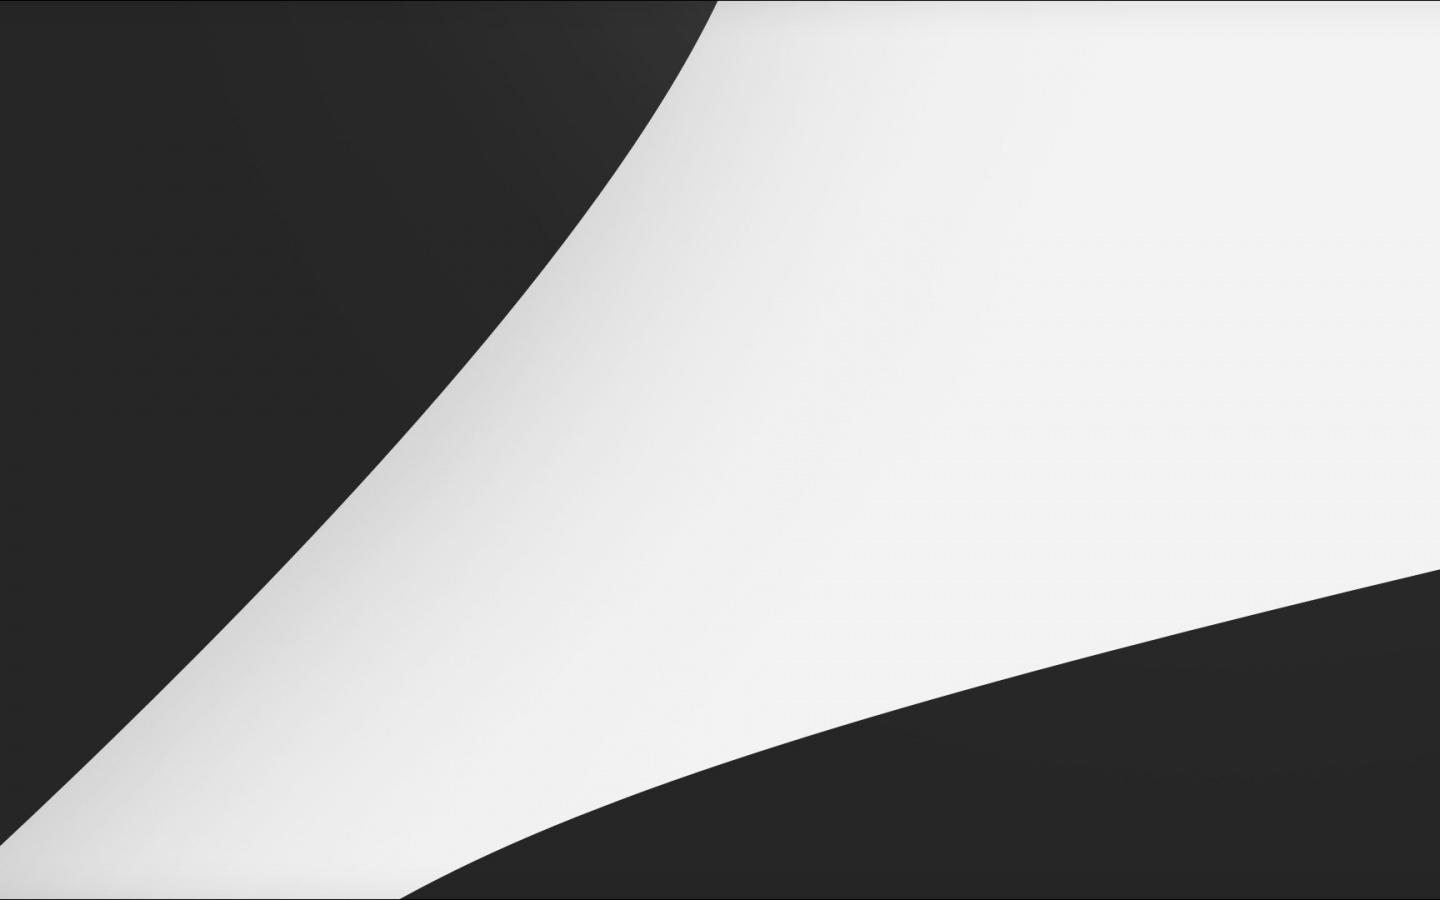 Black and White Abstract Wallpapers 1440x900